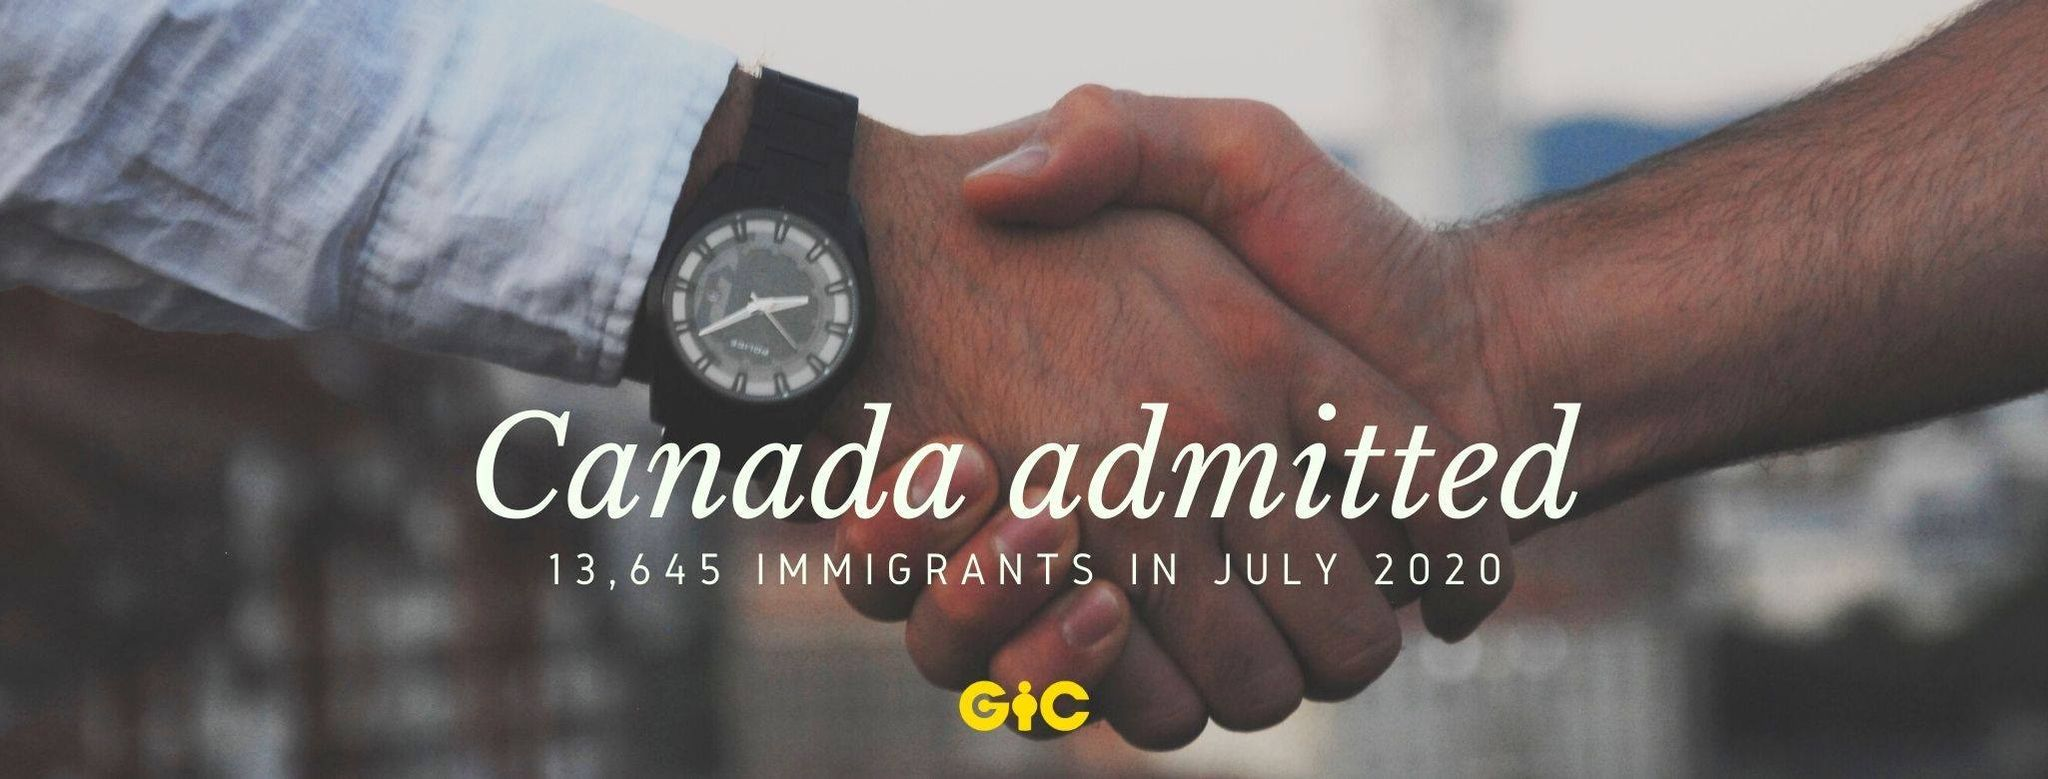 Canada admitted 13,645 immigrants in July 2020